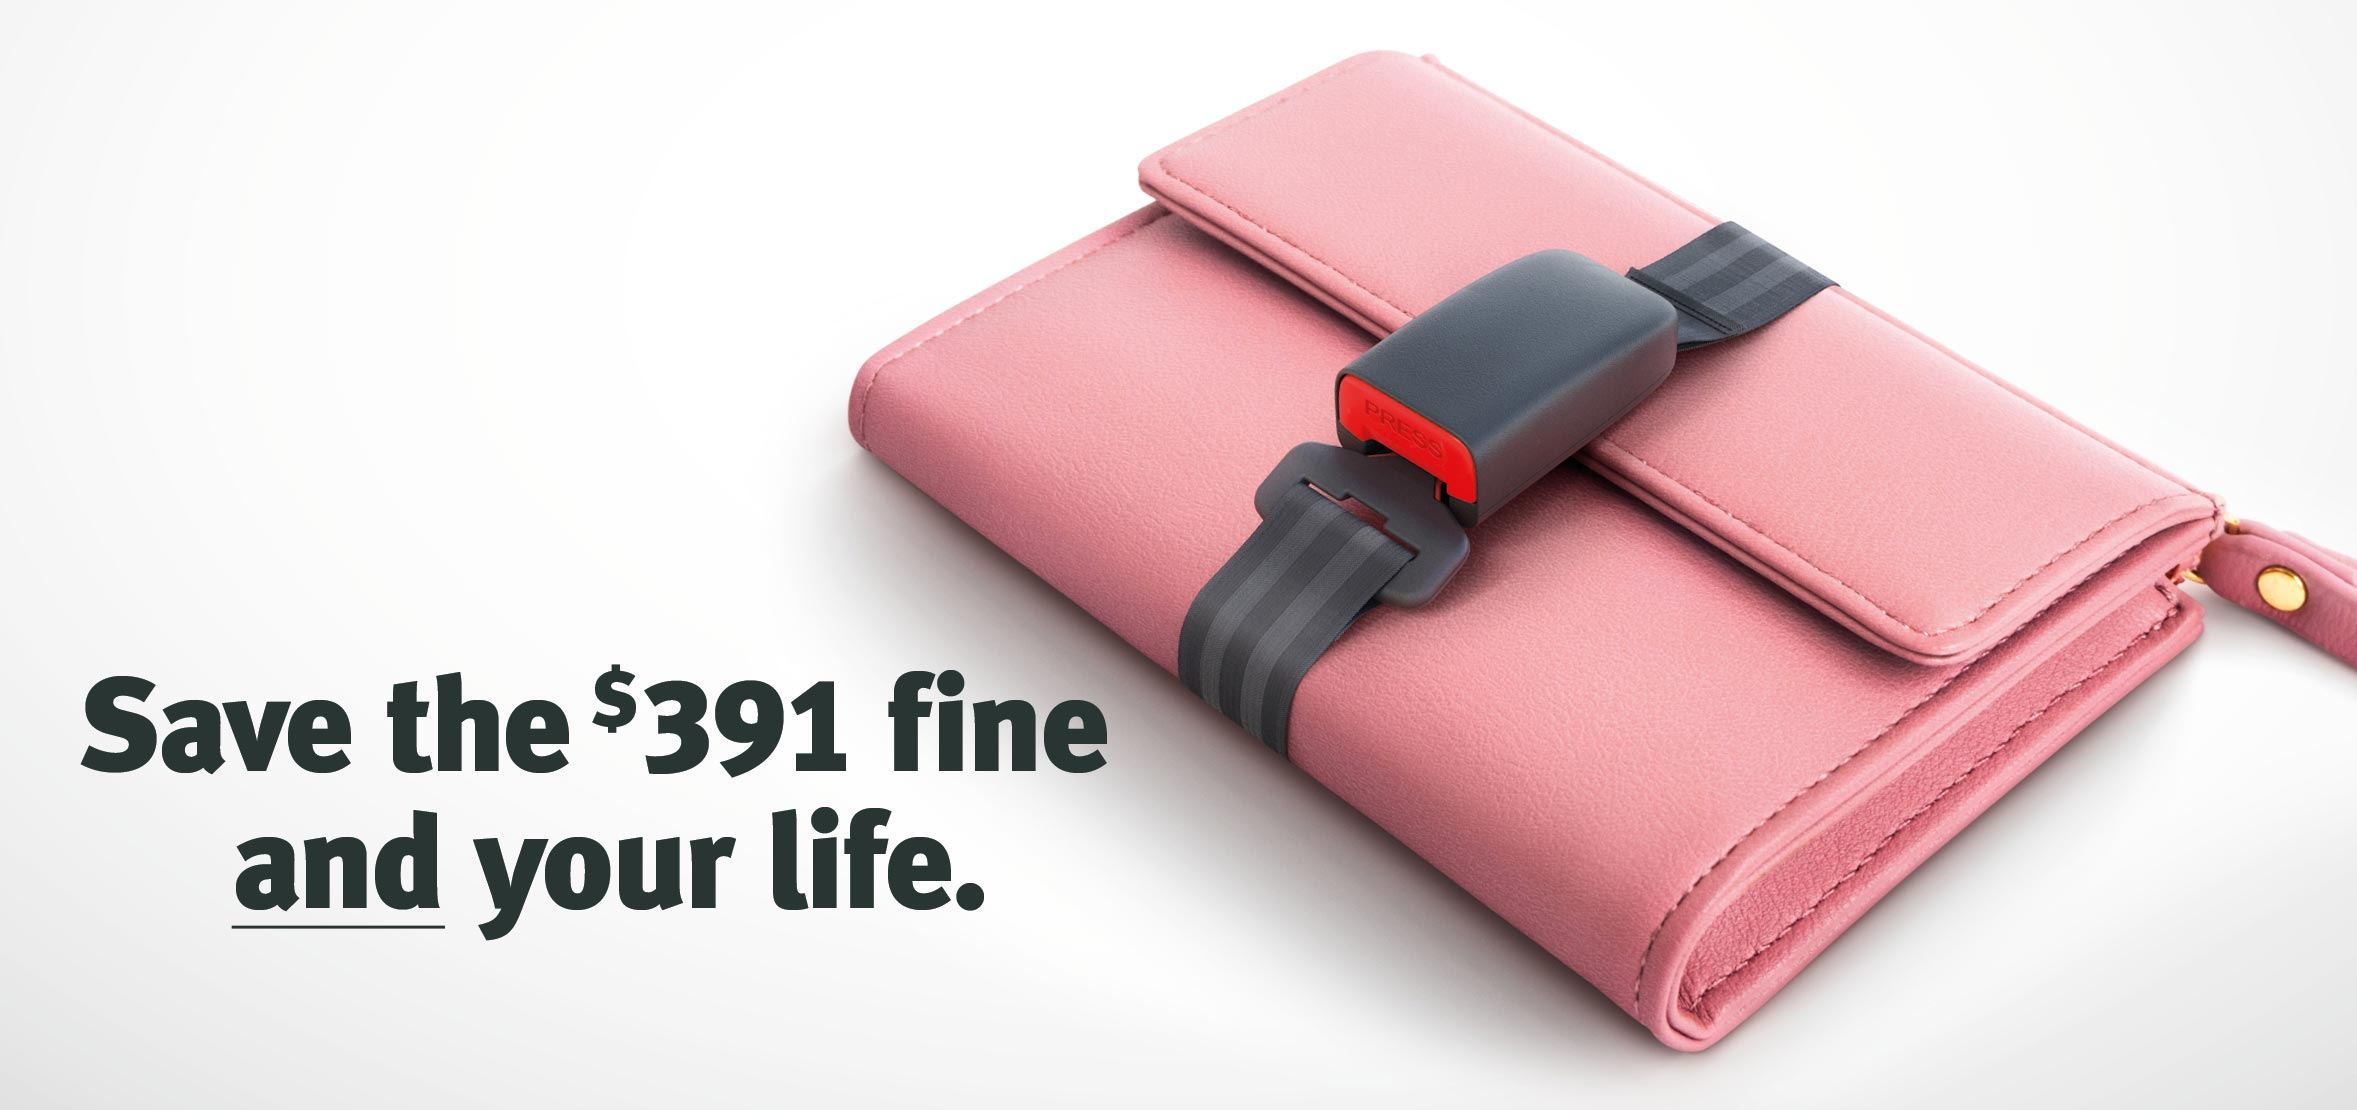 Save the $391 fine and your life